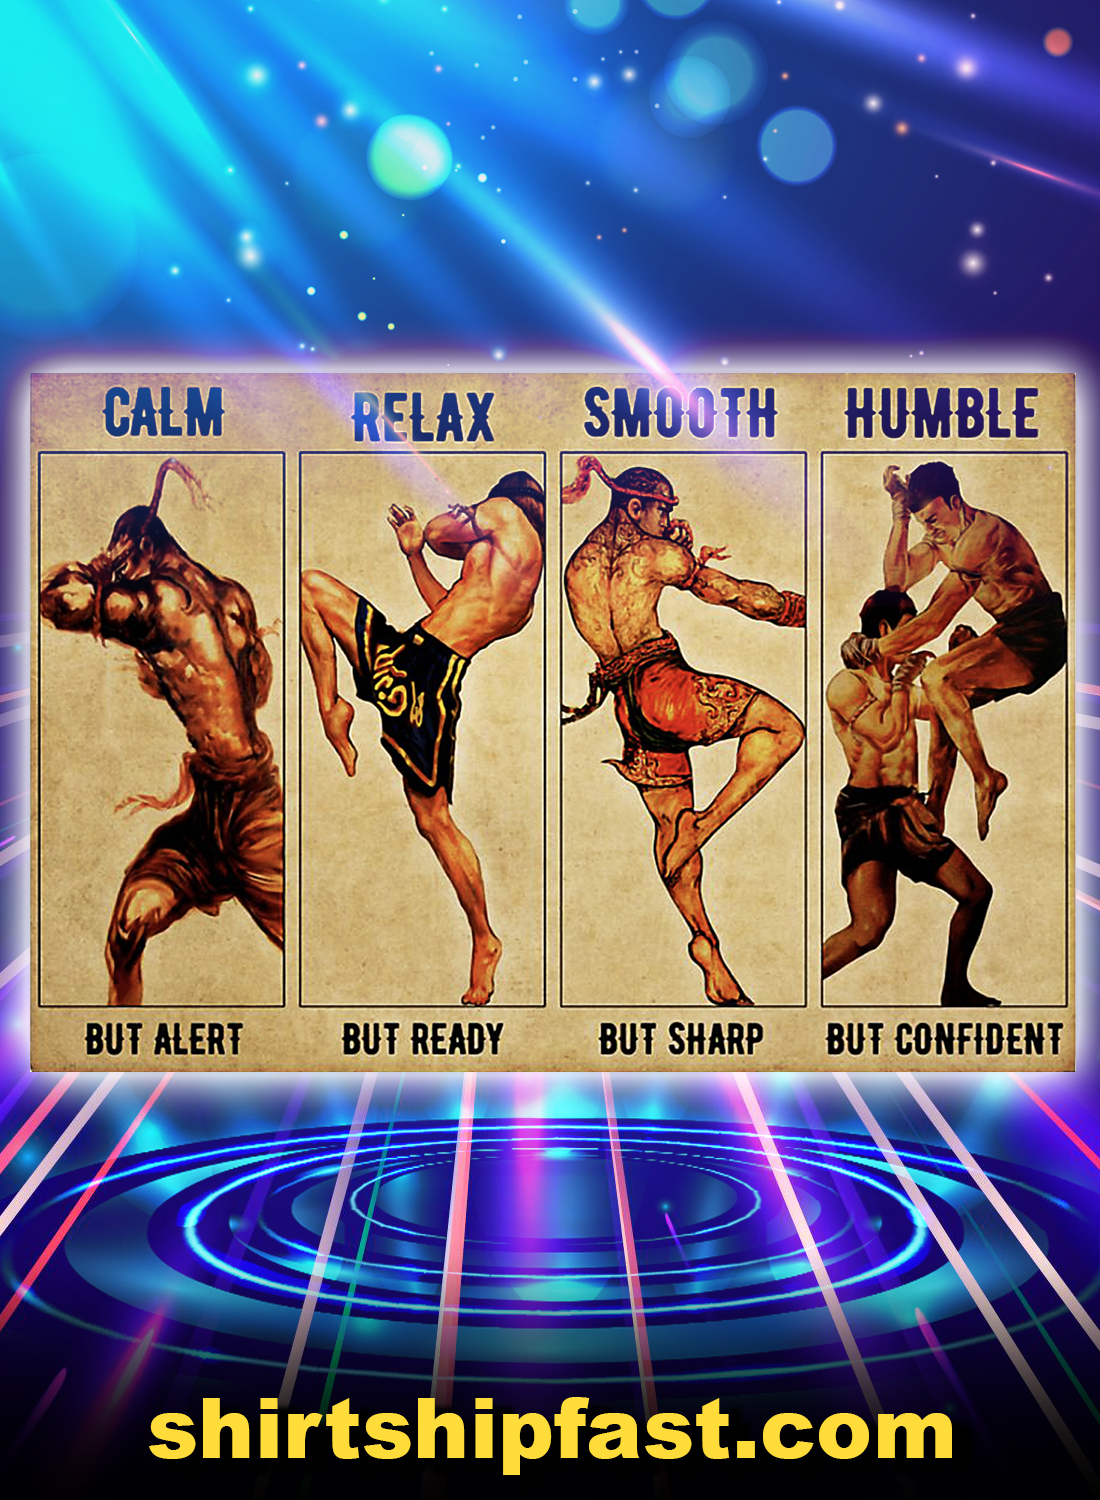 Muay thai calm relax smooth humble poster - A4